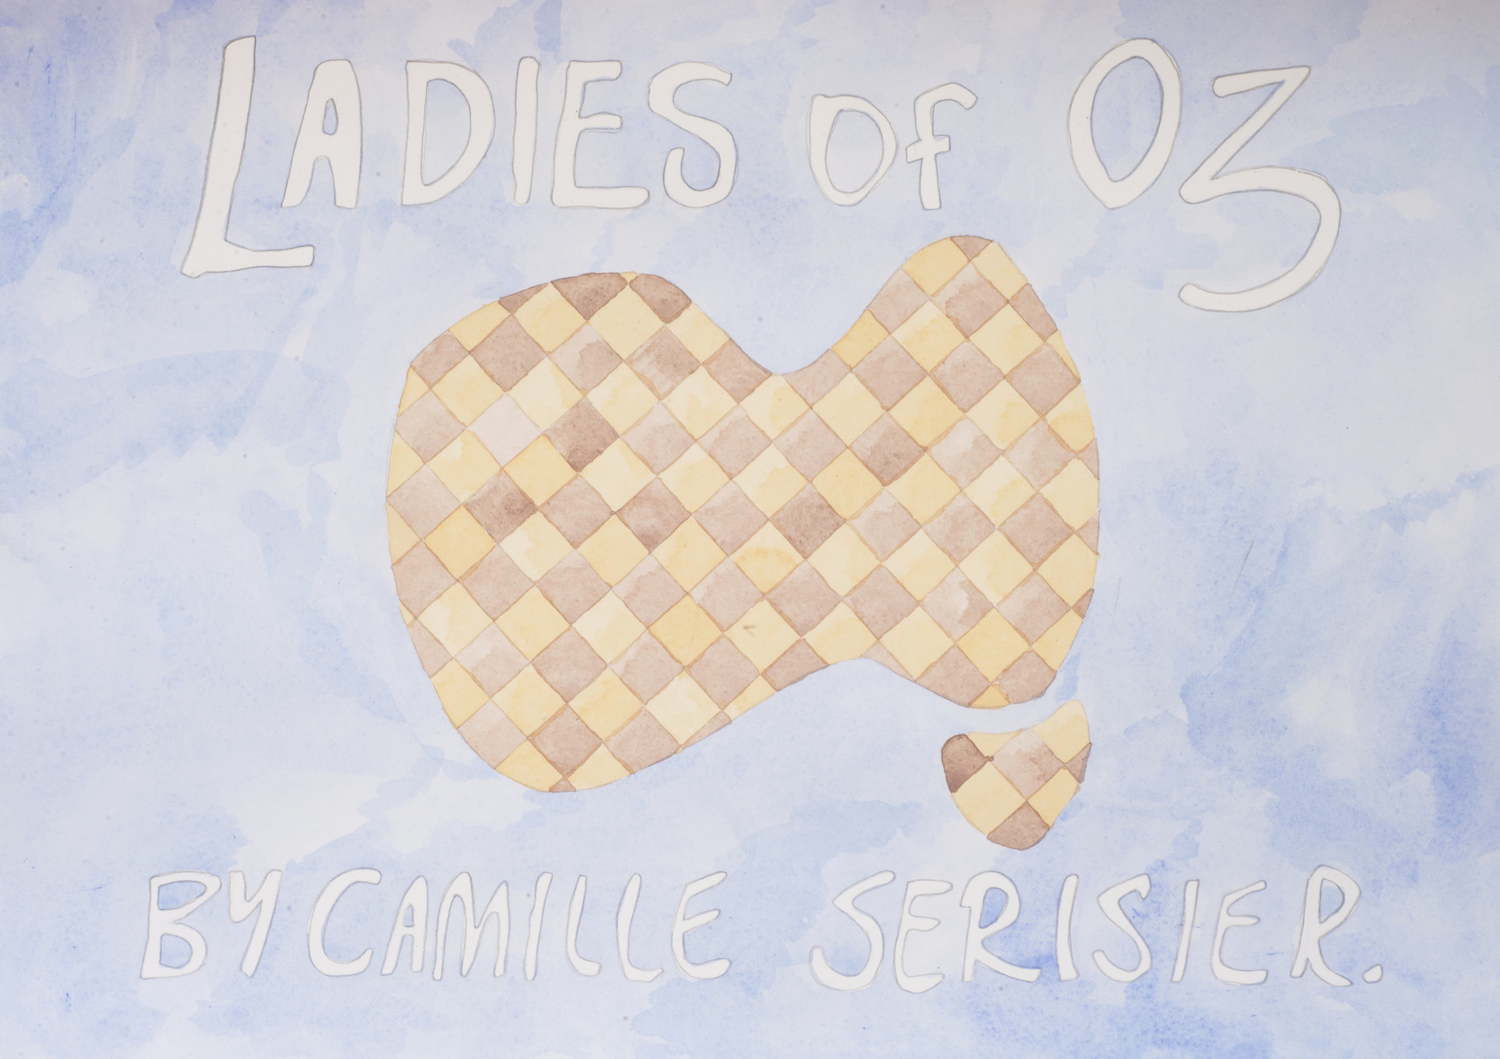 Ladies of Oz, 2016, Watercolour and pencil on paper, 42.0 x 29.5 cm, Unique object